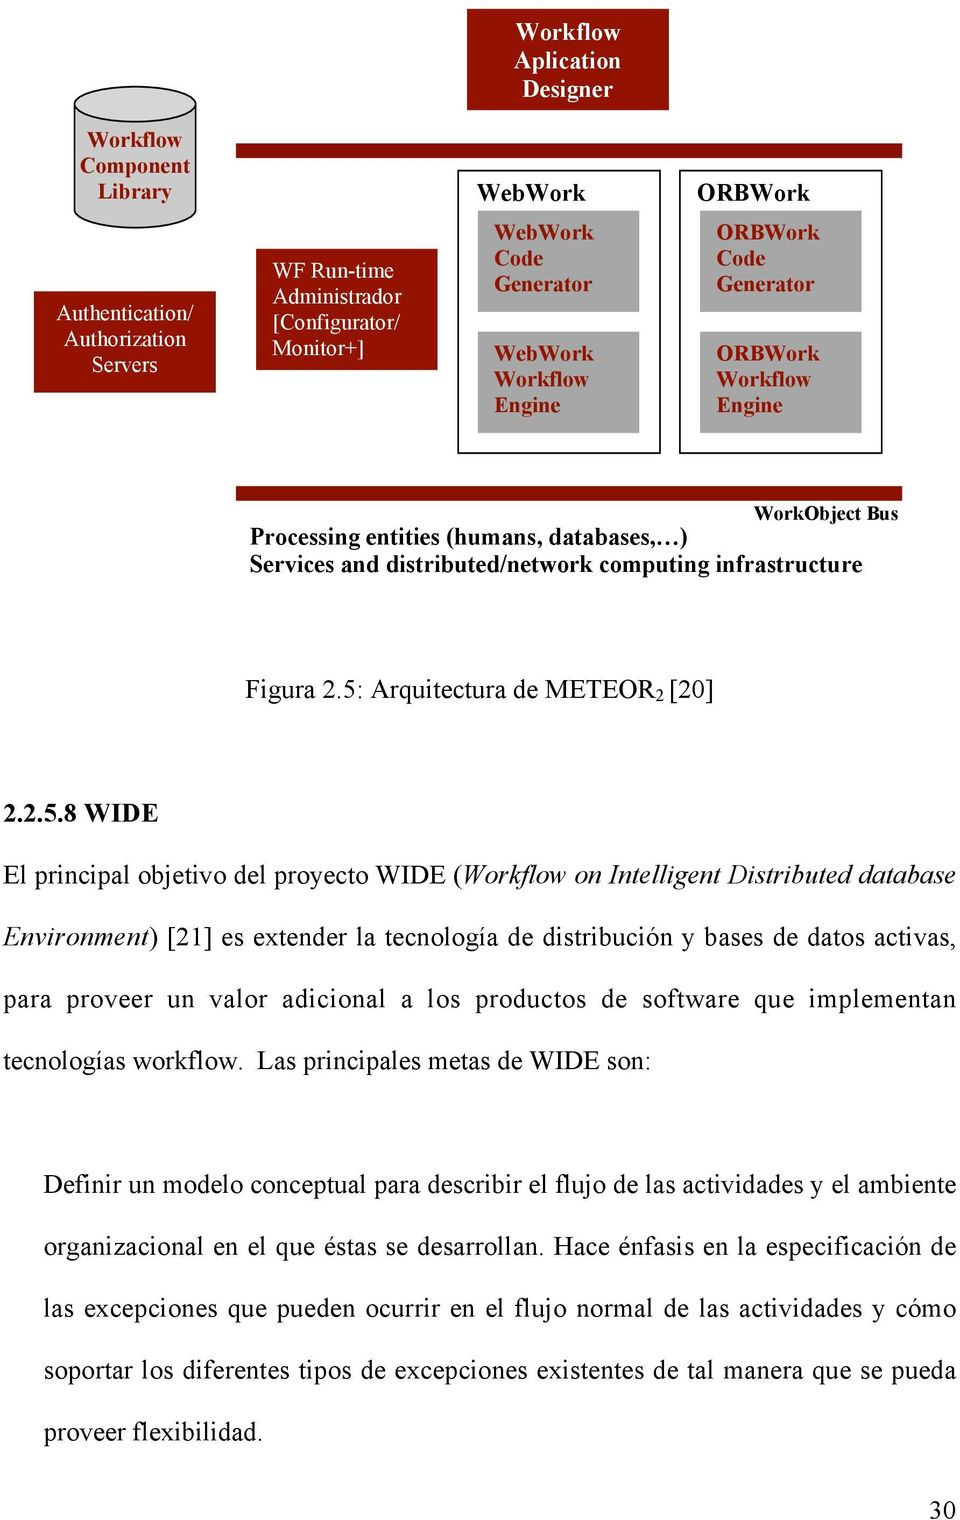 5: Arquitectura de METEOR 2 [20] 2.2.5.8 WIDE El principal objetivo del proyecto WIDE (Workflow on Intelligent Distributed database Environment) [21] es extender la tecnología de distribución y bases